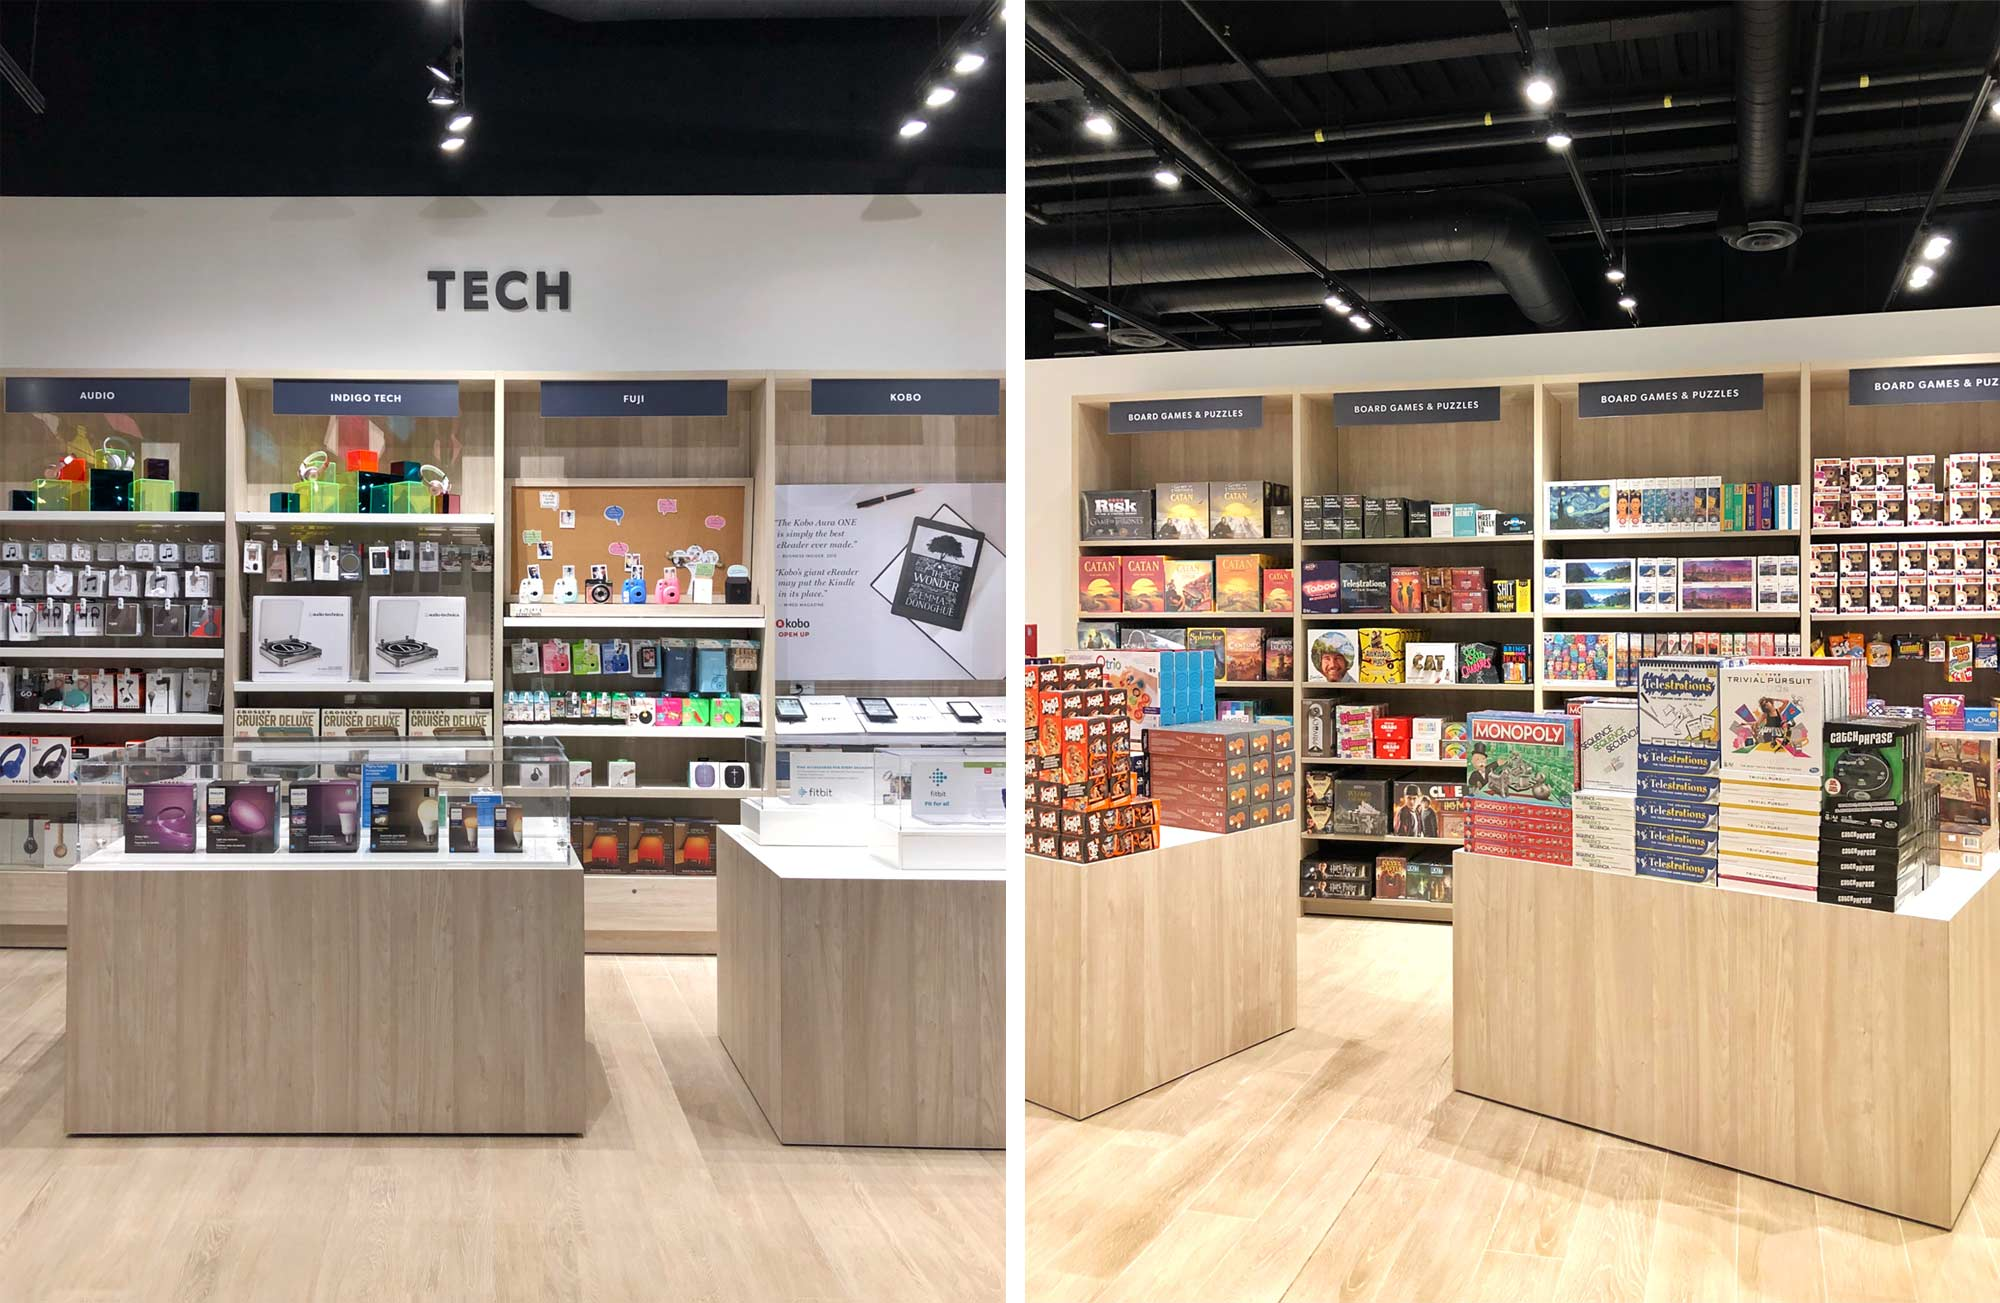 The Tech and Games Section at the New Kitchener Indigo Store